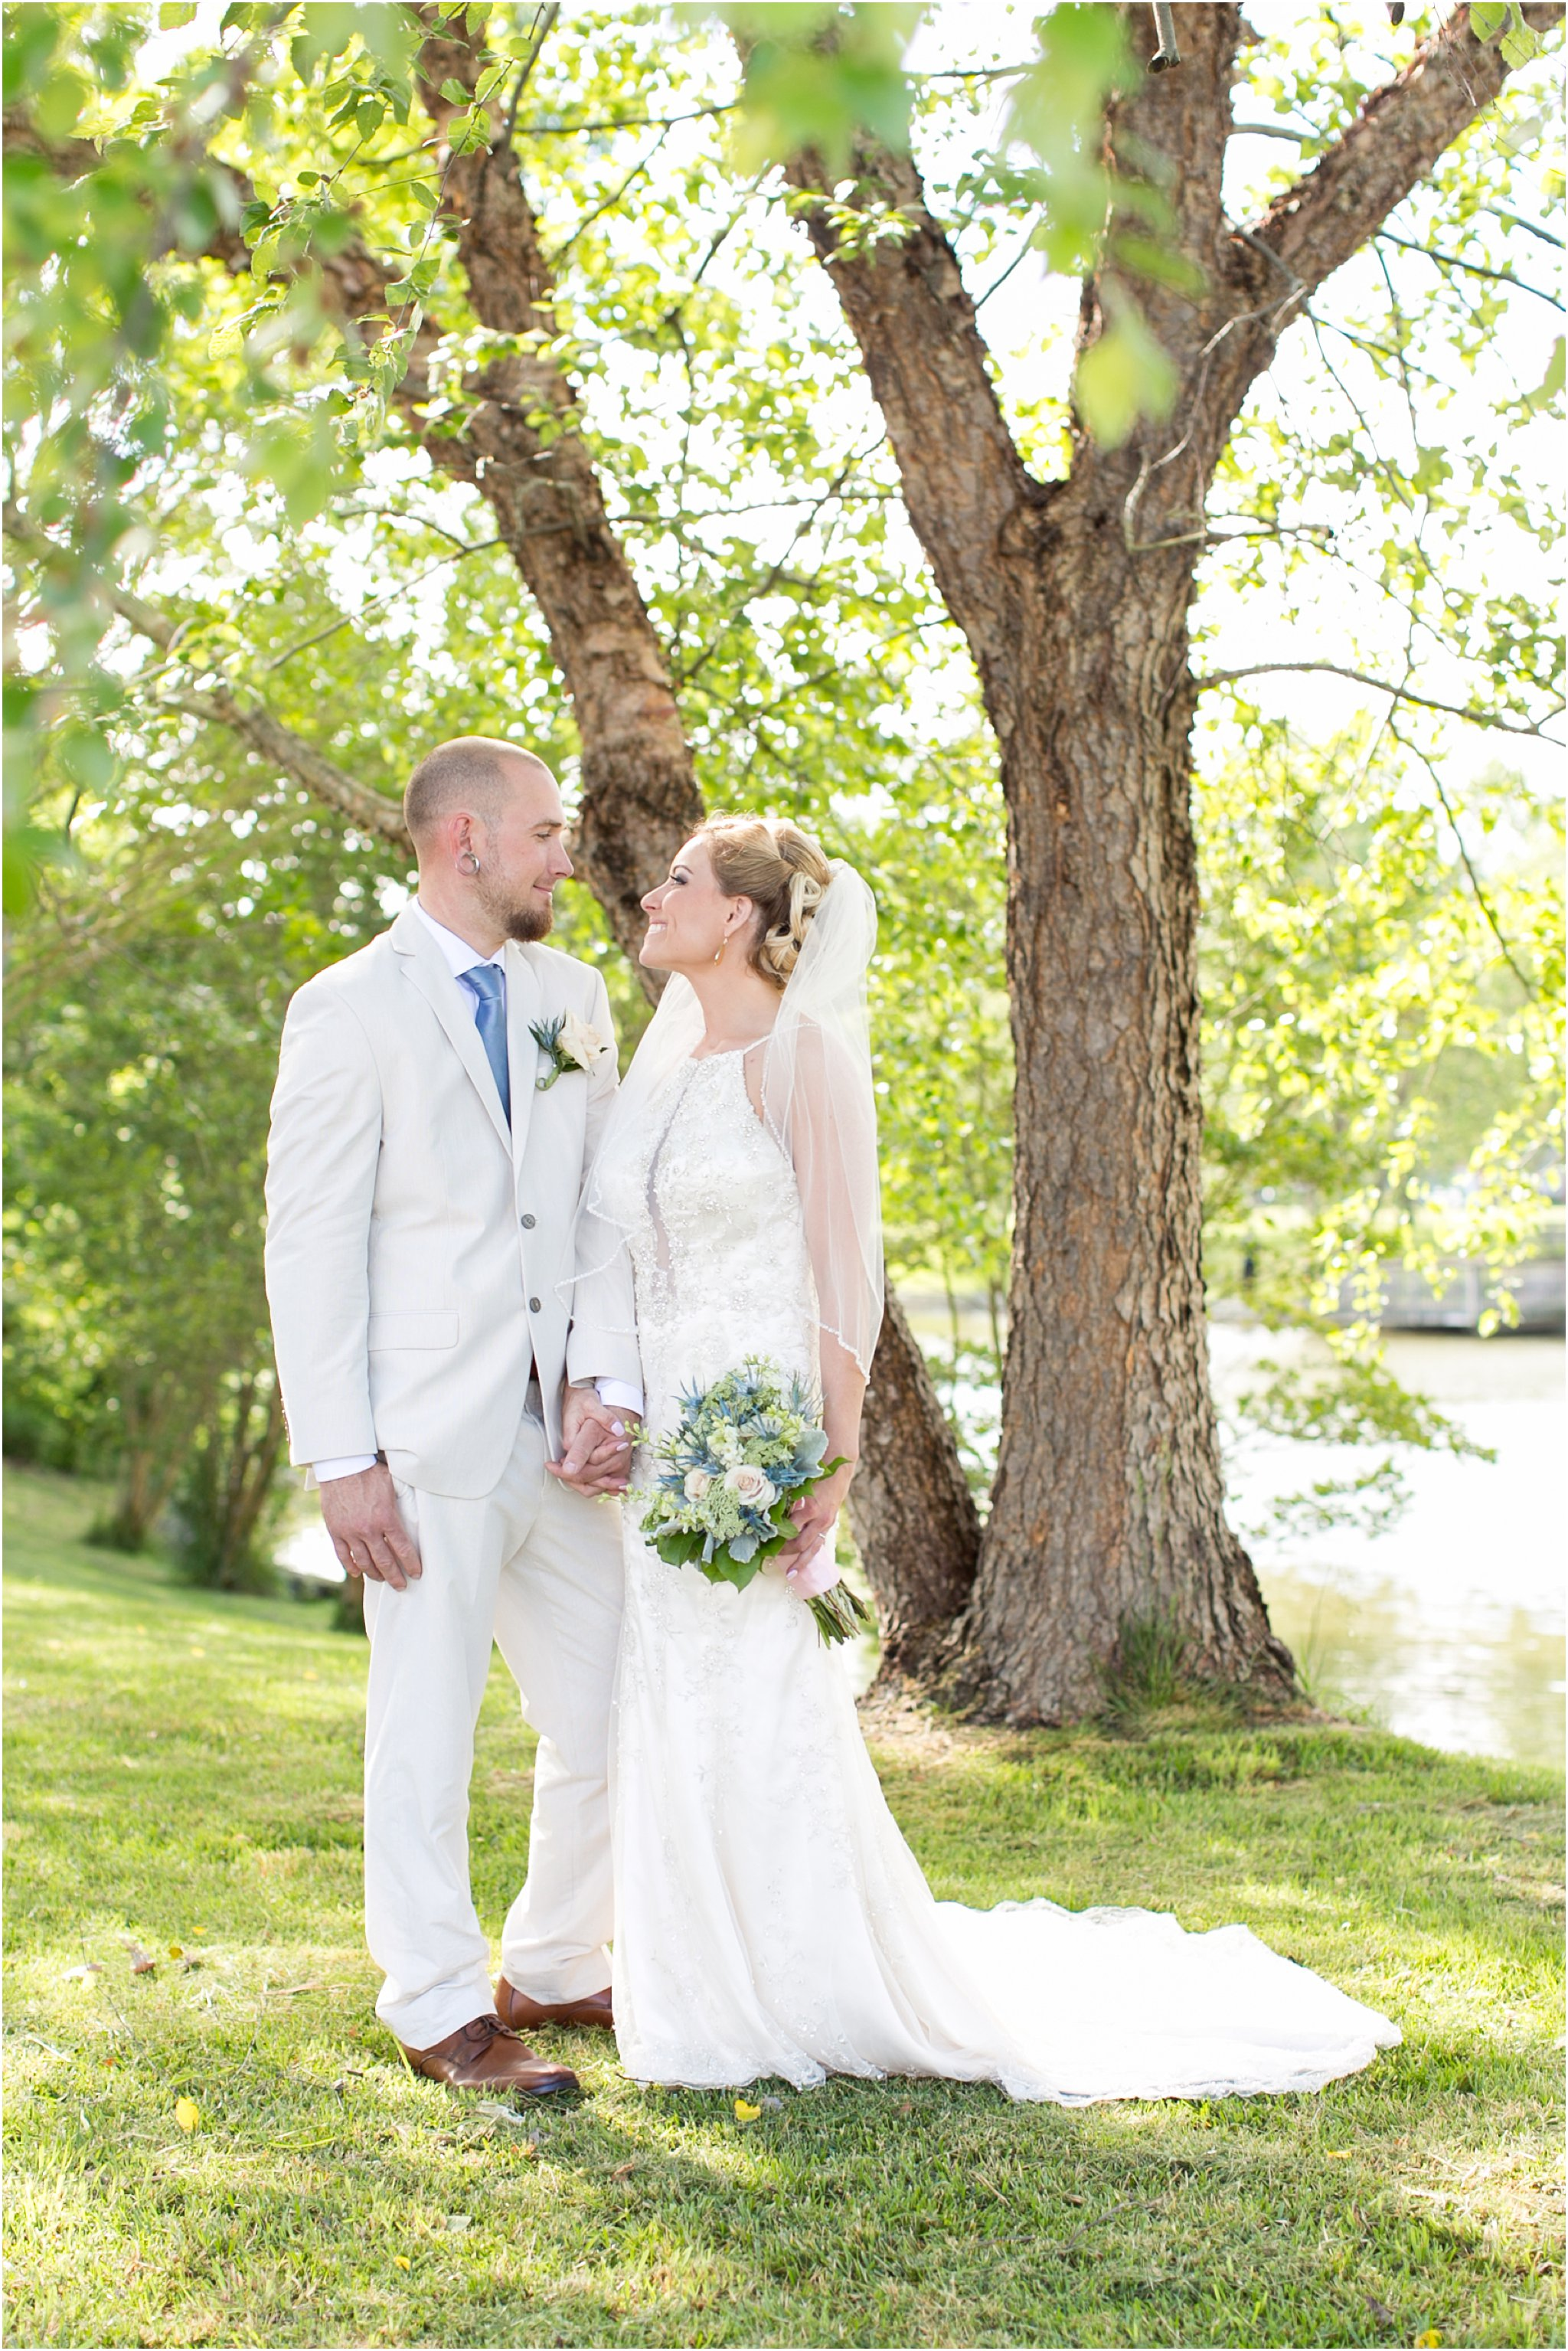 jessica_ryan_photography_virginia_virginiabeachweddingphotographer_studioIdo_backyardwedding_waterfrontwedding_1673